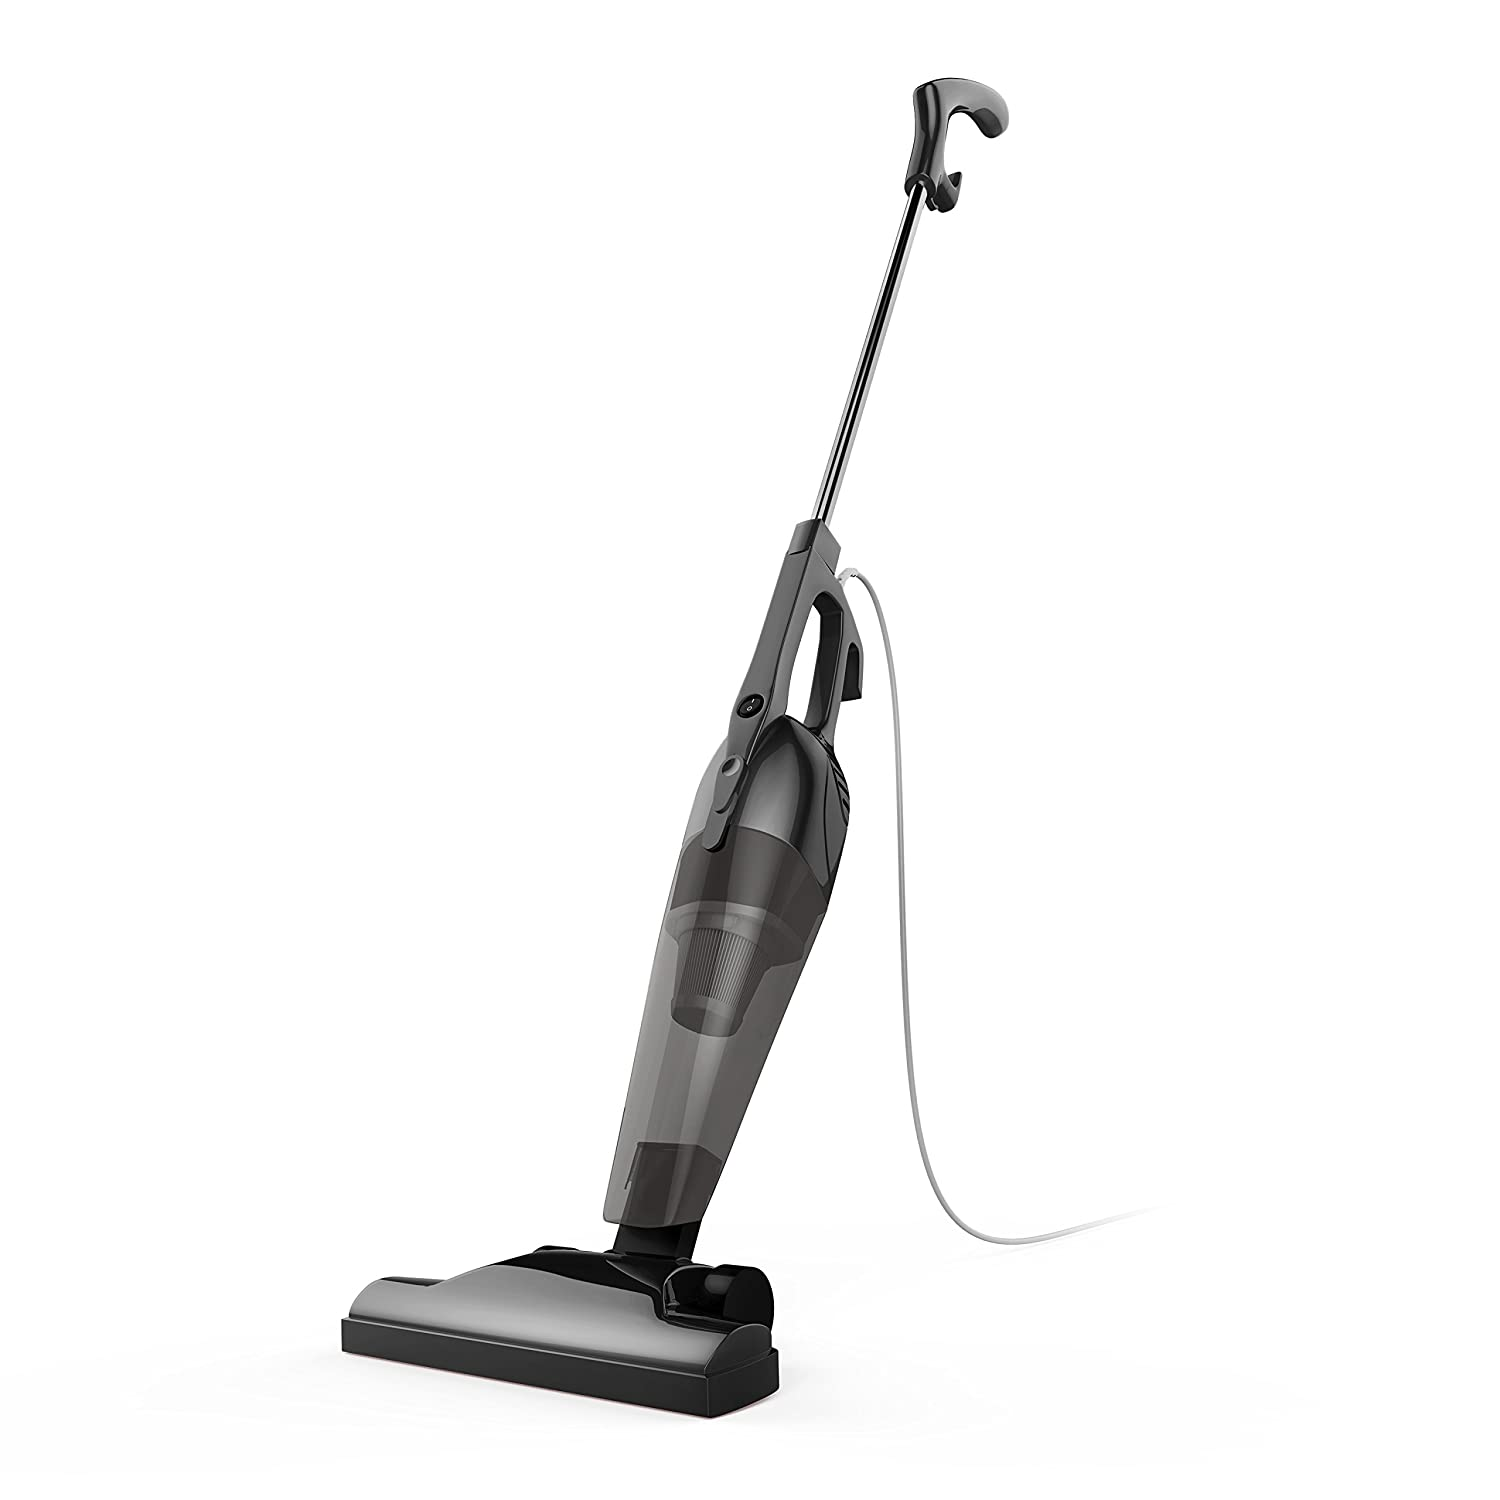 BESTEK Corded Stick Vacuum Cleaner Upright and Handheld 2-in-1 with HEPA Filtratio